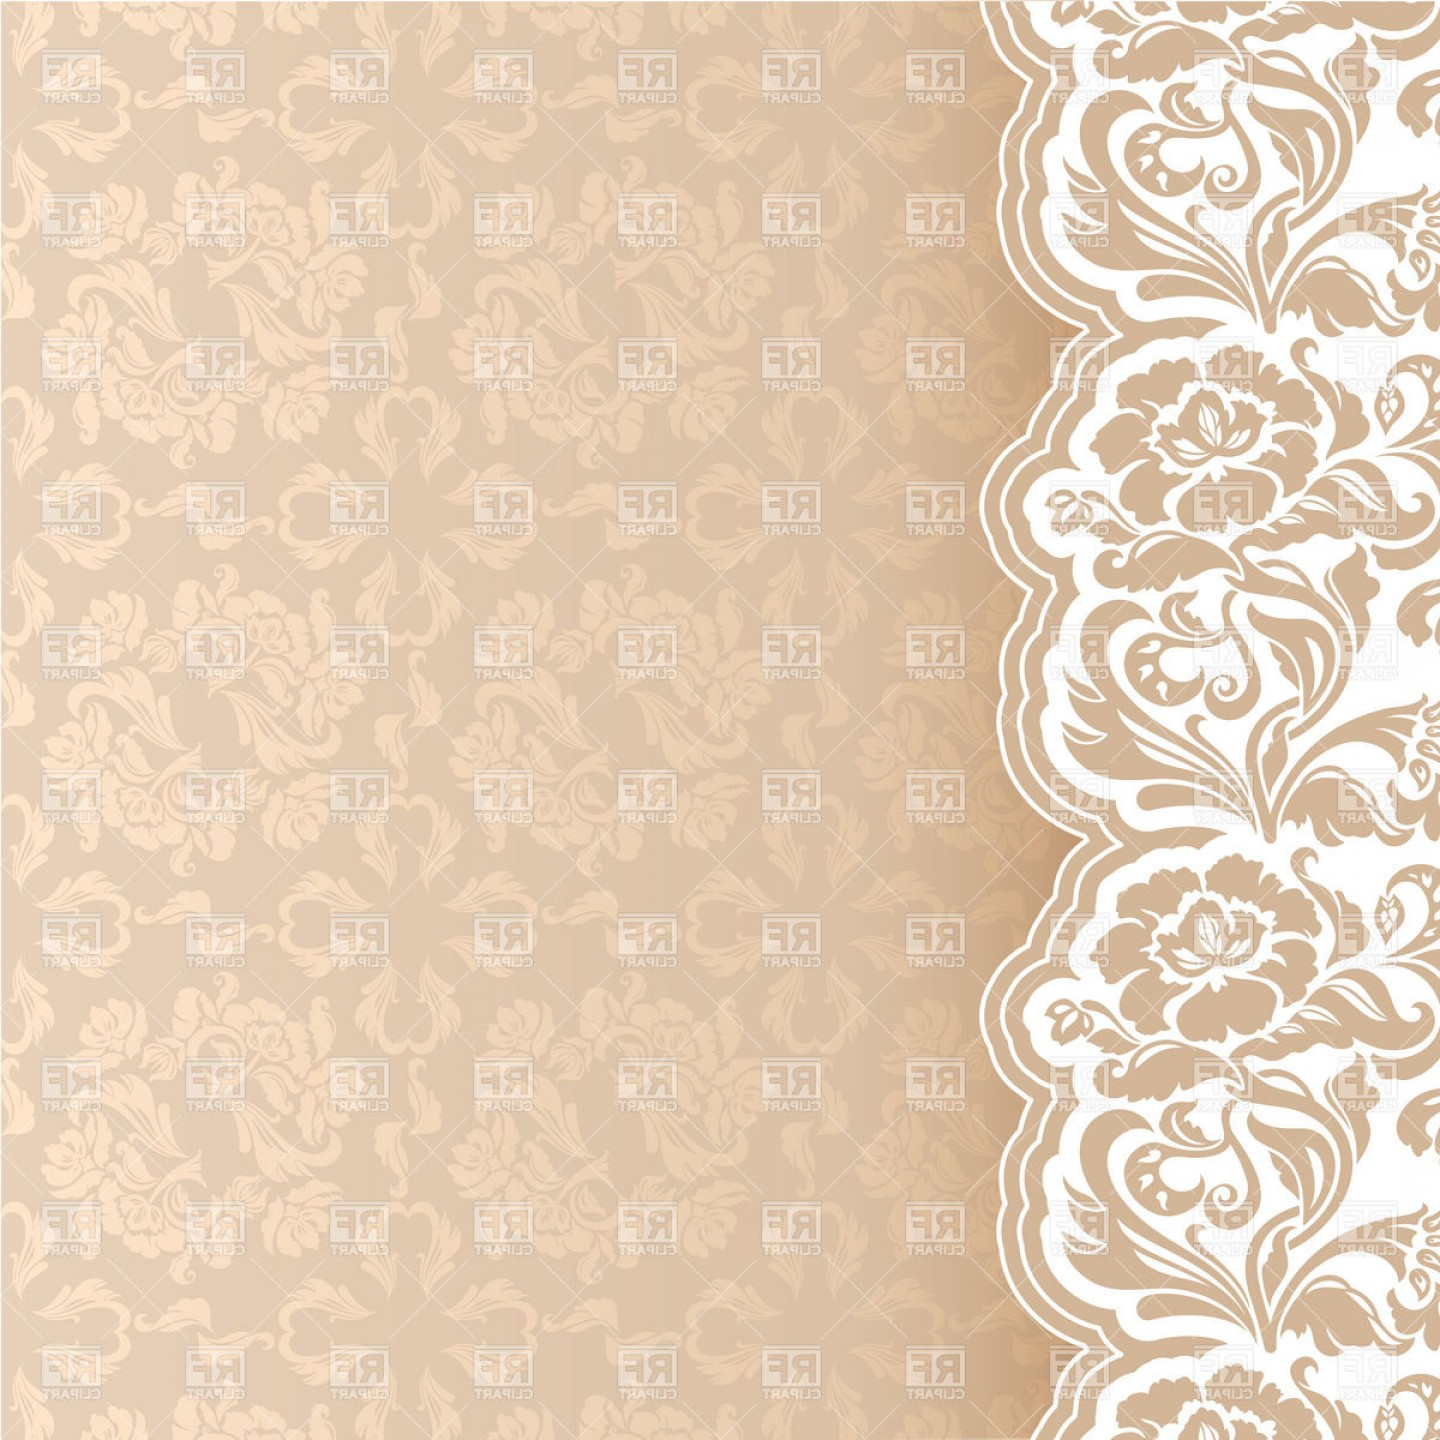 Beige victorian lacy.